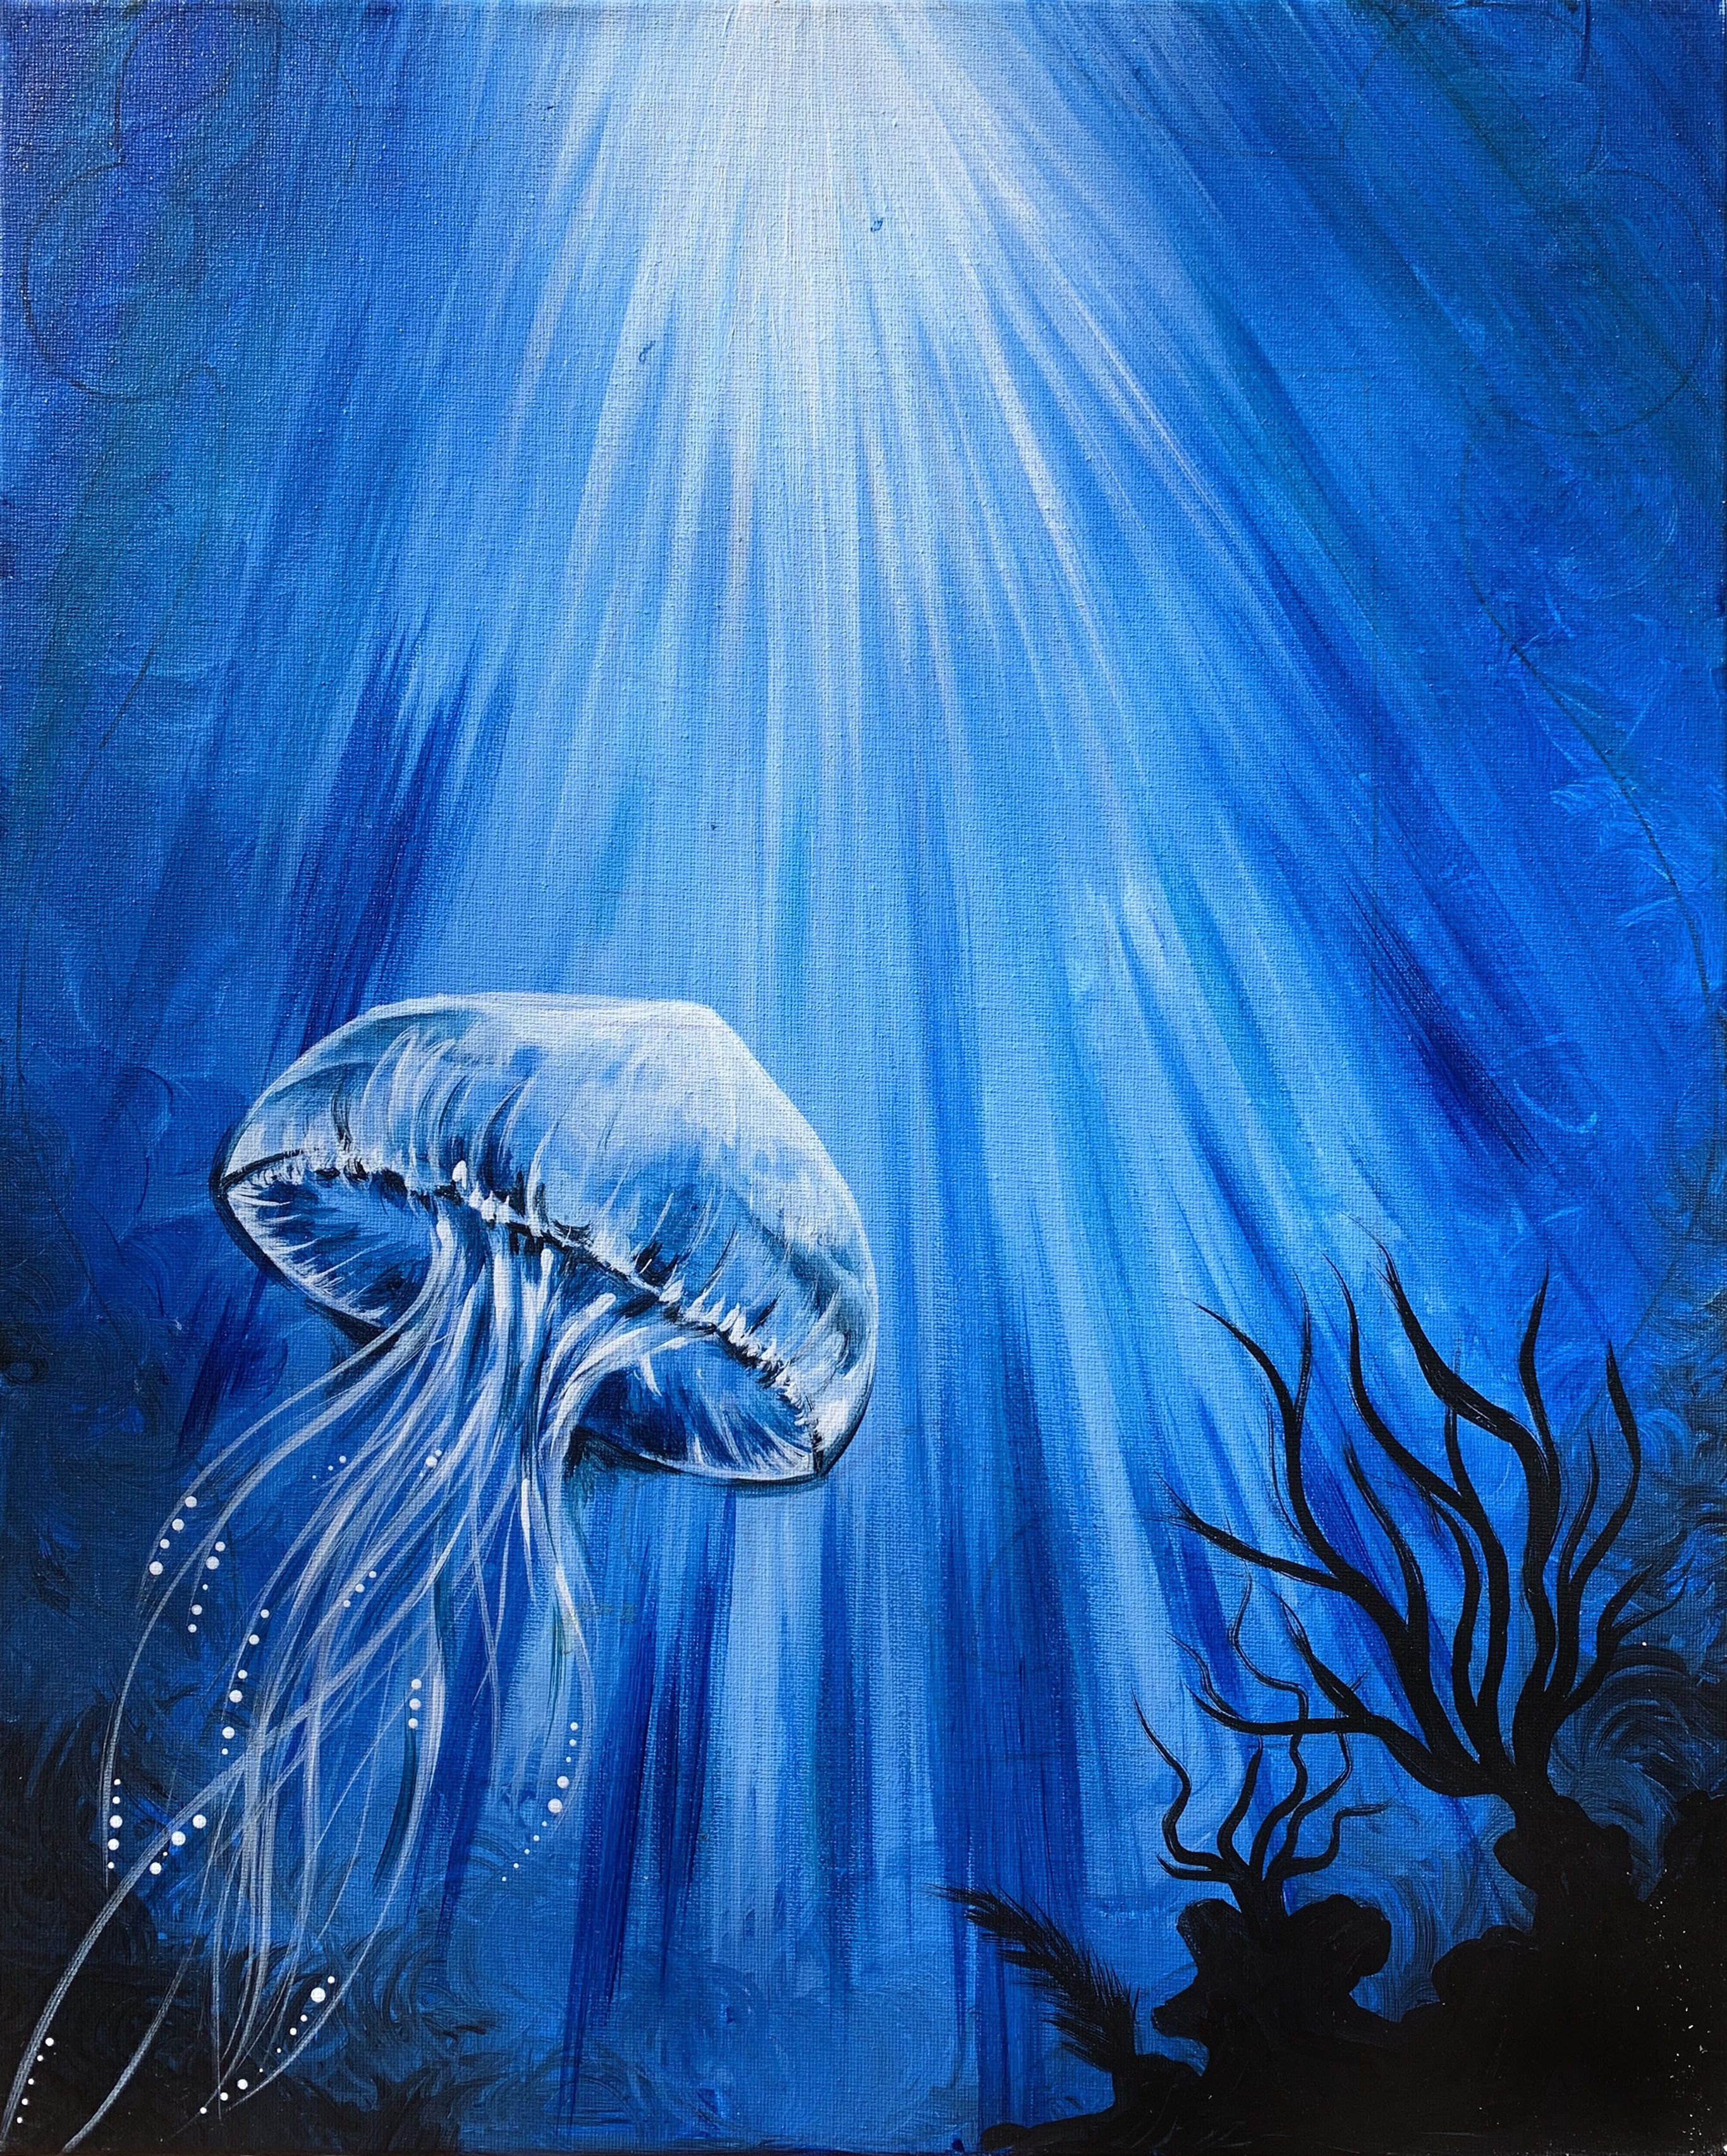 hey check out blue jelly at chuck s place yaymaker shark painting jellyfish painting jellyfish art blue jelly at chuck s place